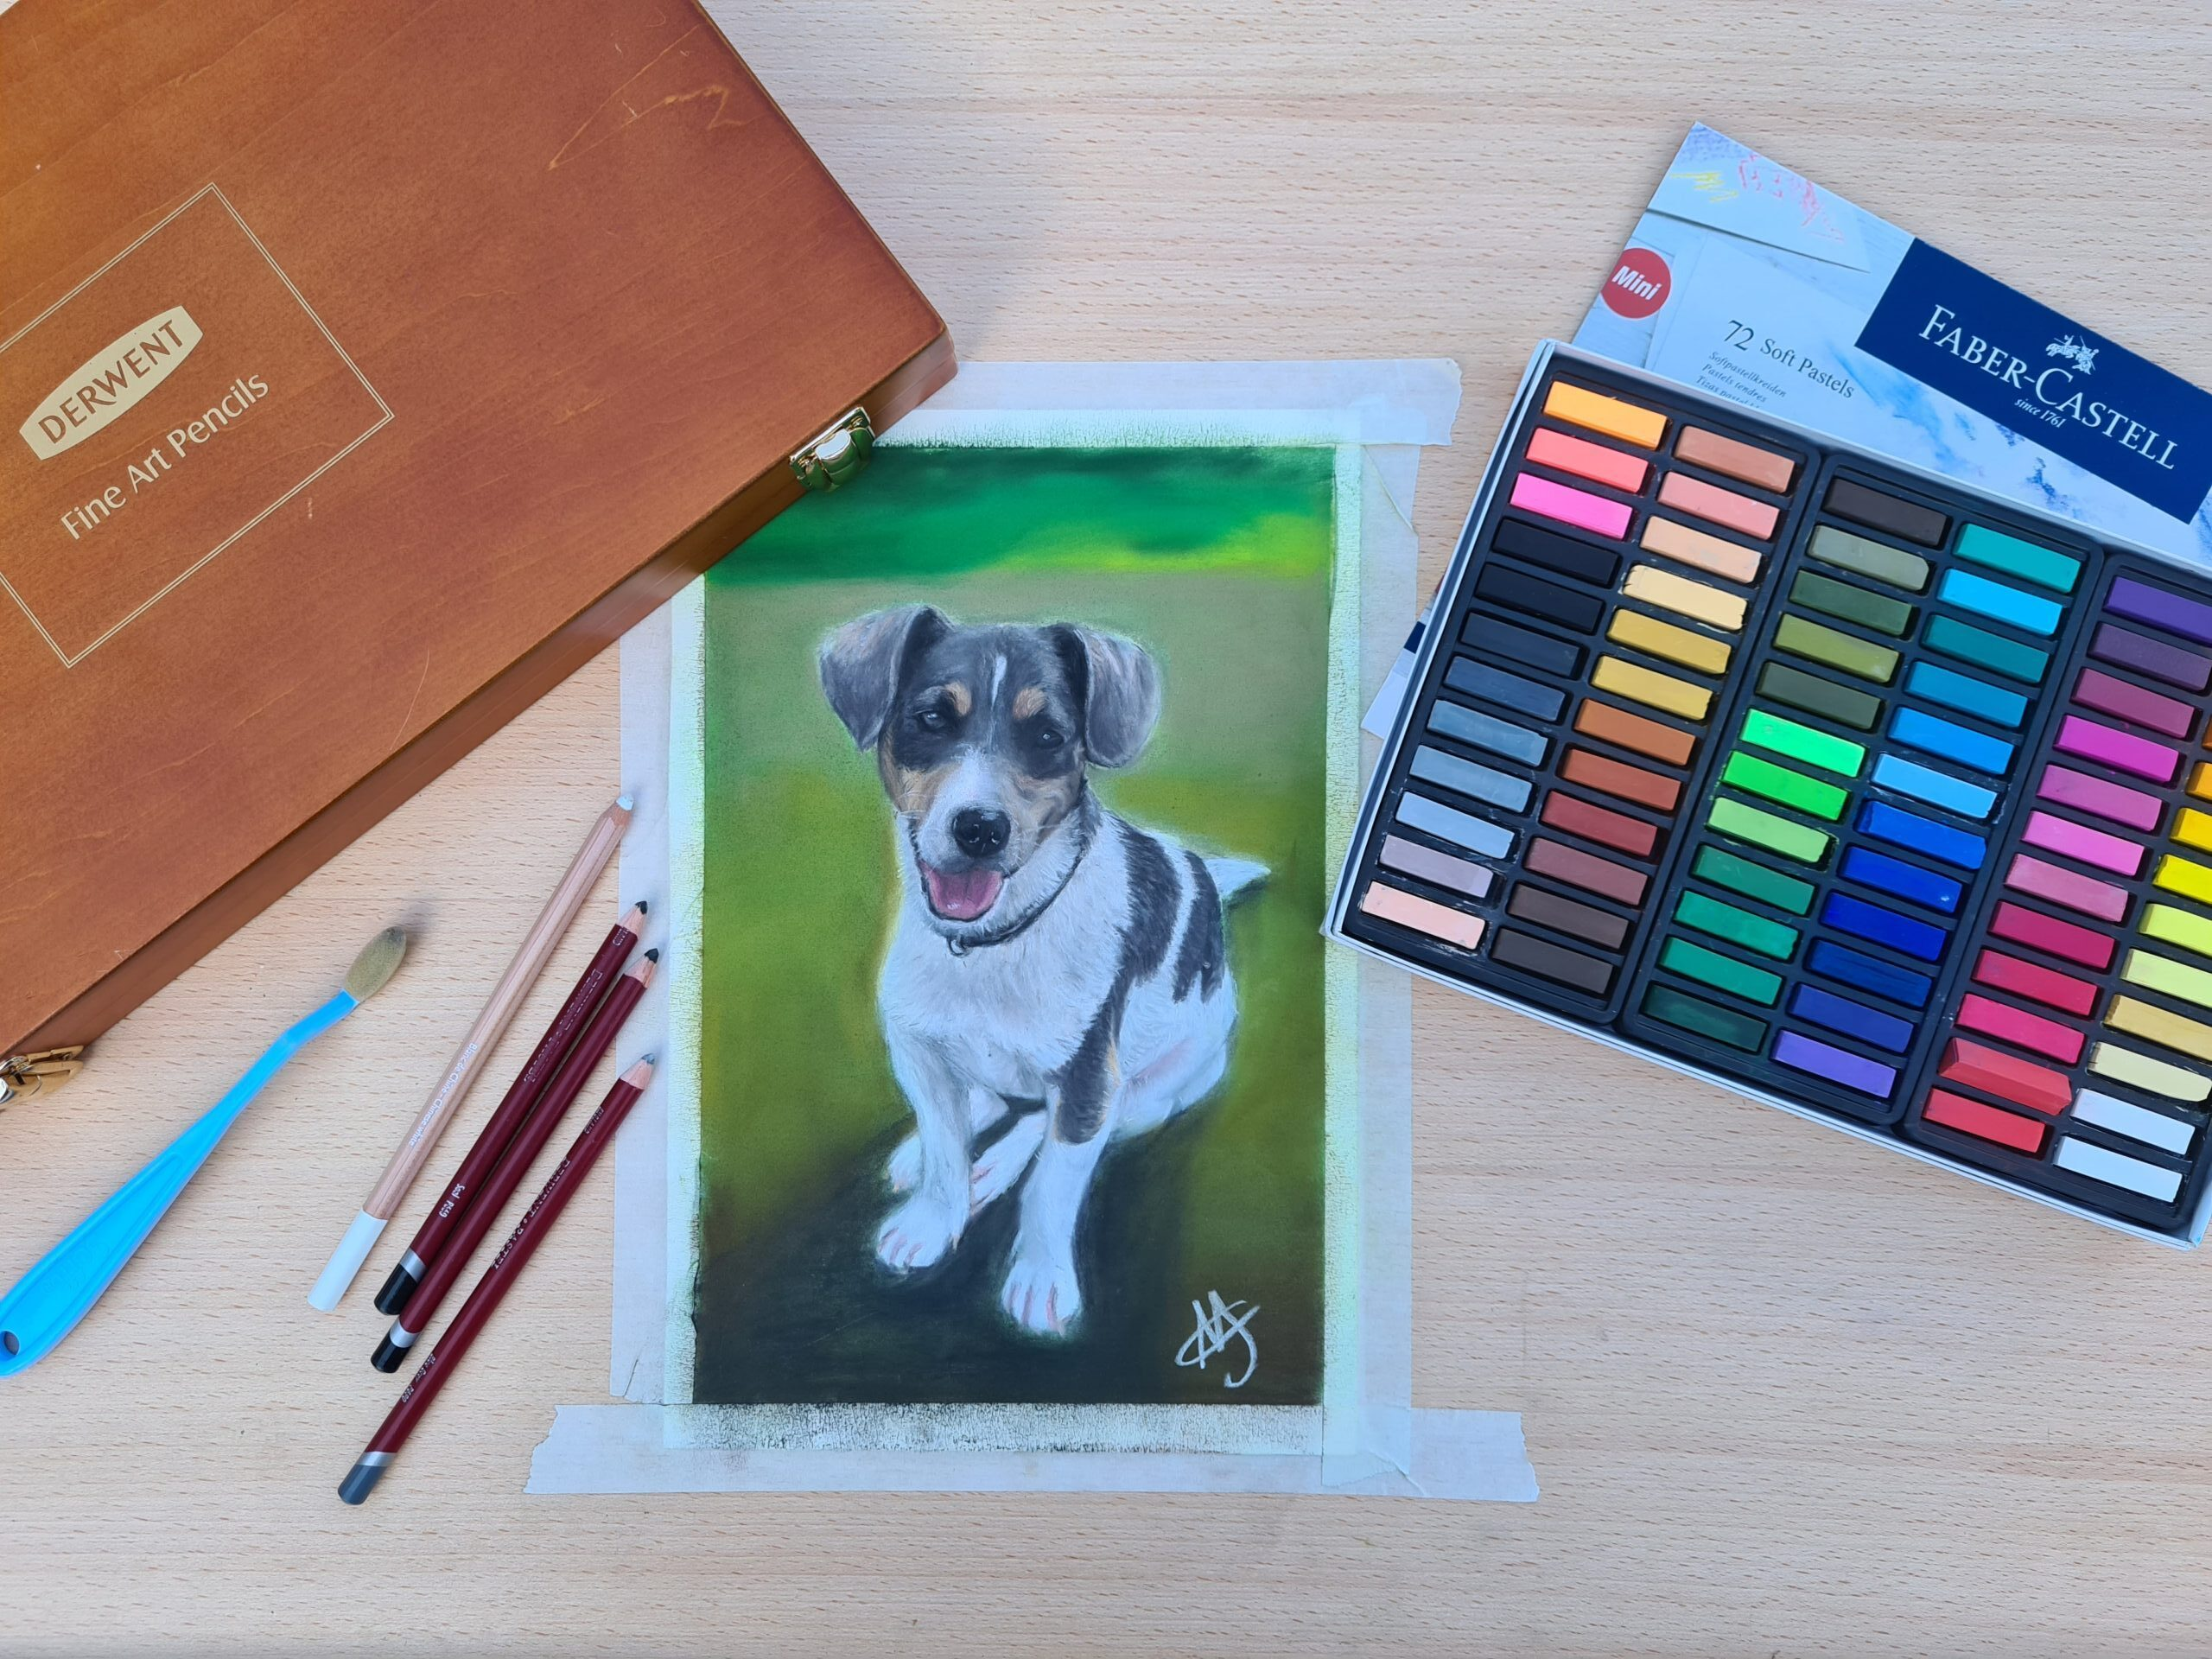 Taco the Jack Russel